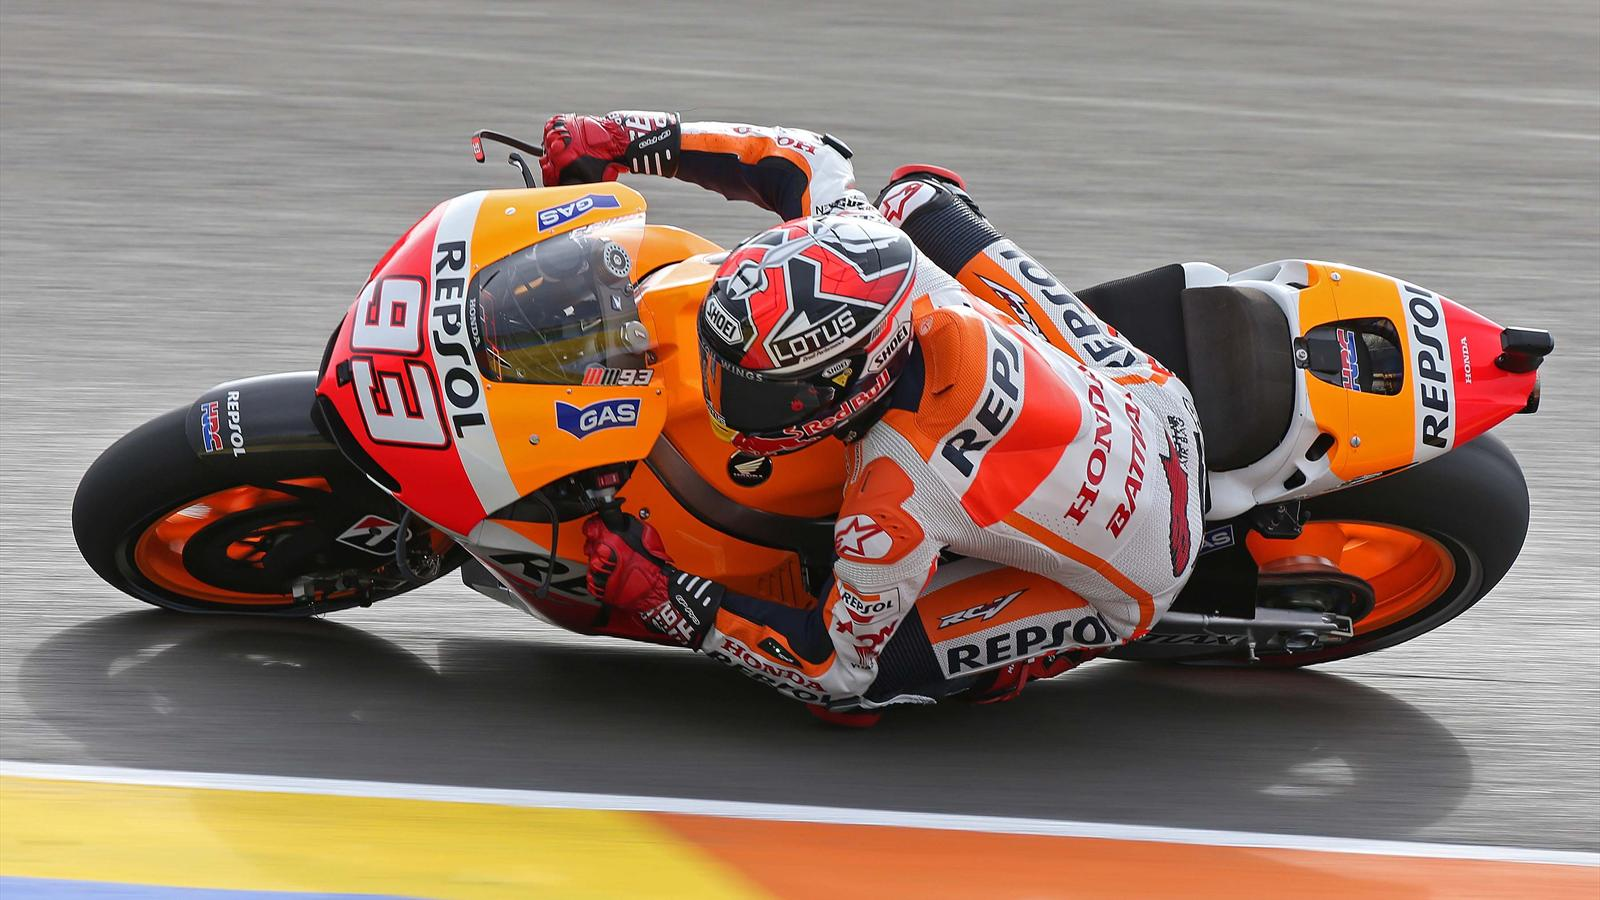 Grand Prix MotoGP de Valence en direct live streaming